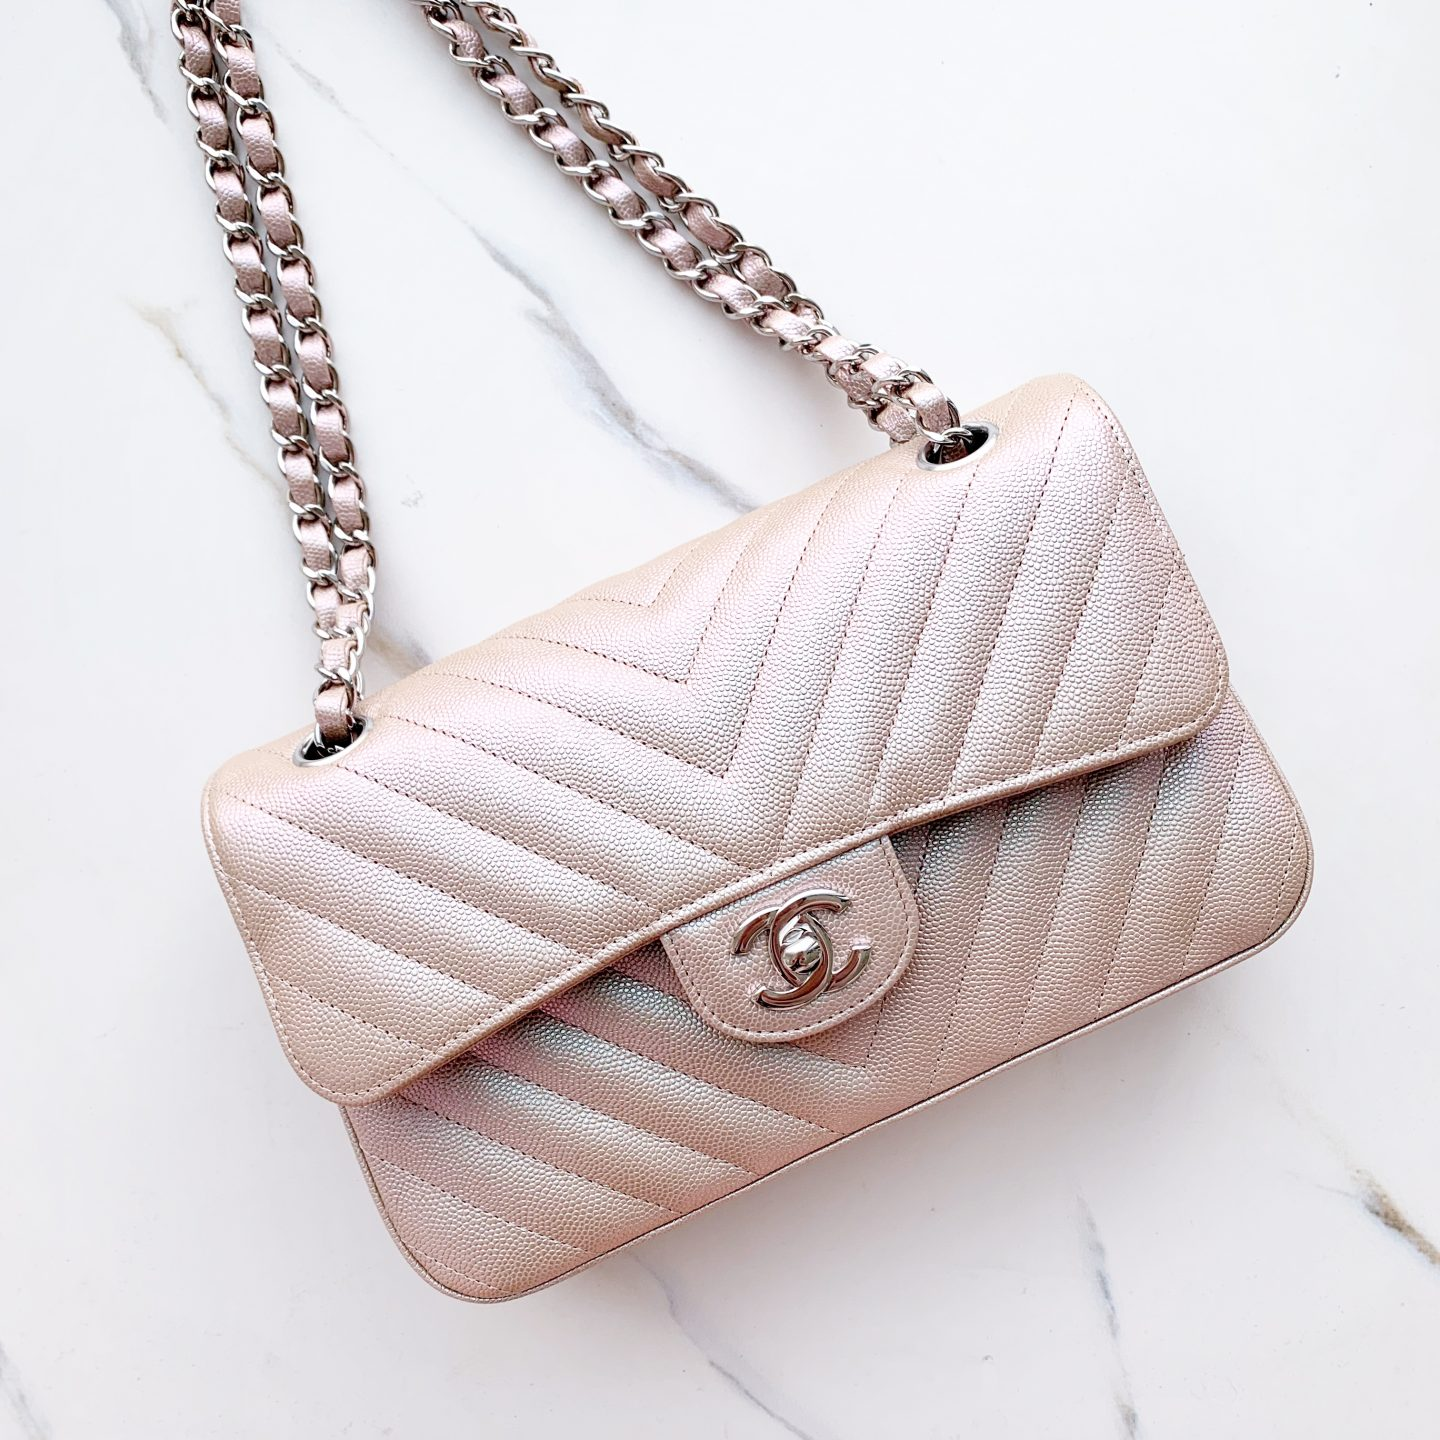 efd3bd07d3d9 ... length is a great deal shorter though and this style is most suited to  wearing on the shoulder – it is too short for most to be able to wear  crossbody.